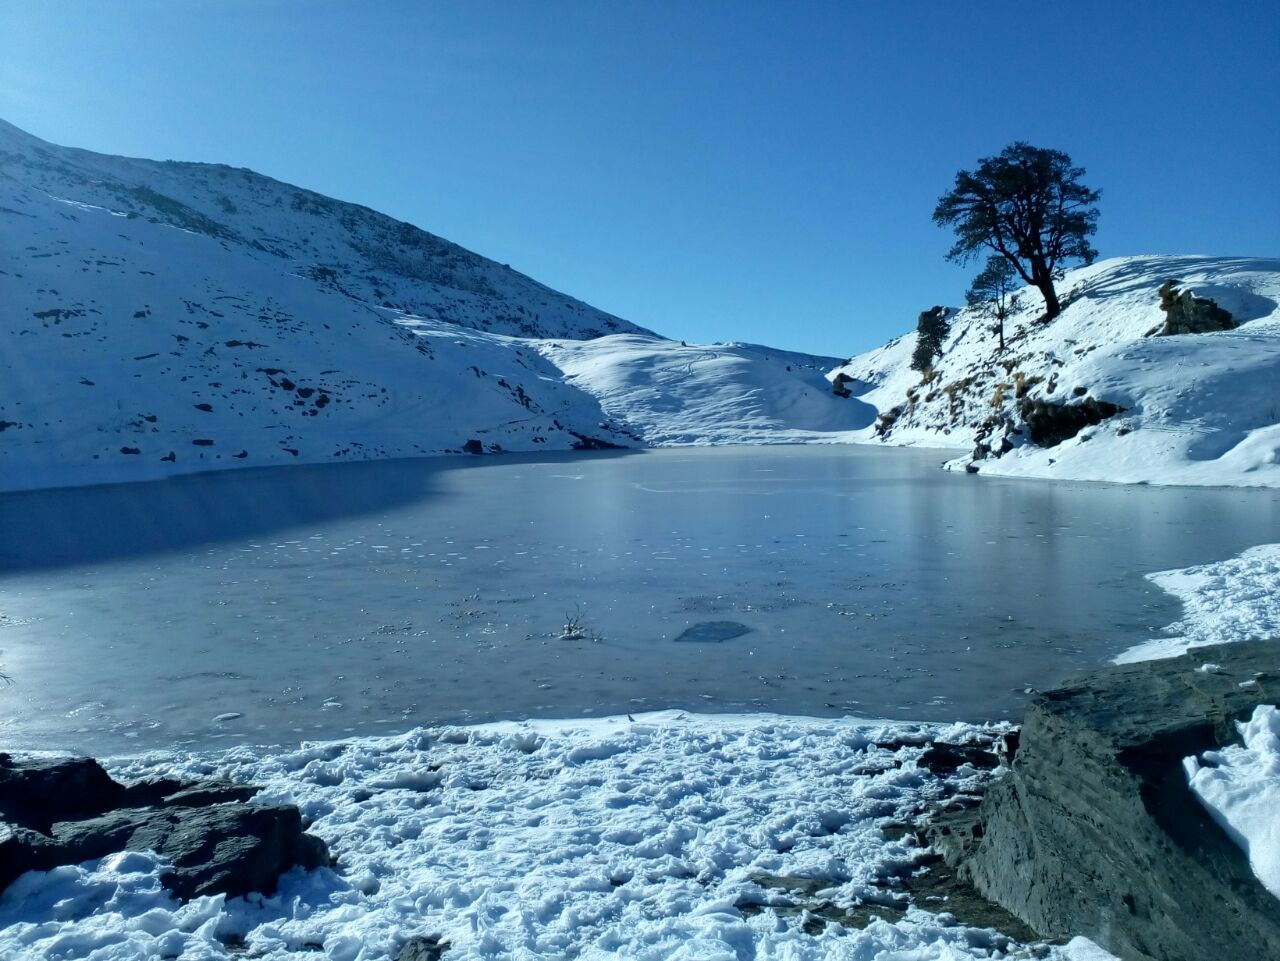 brahmatal lake in winter season